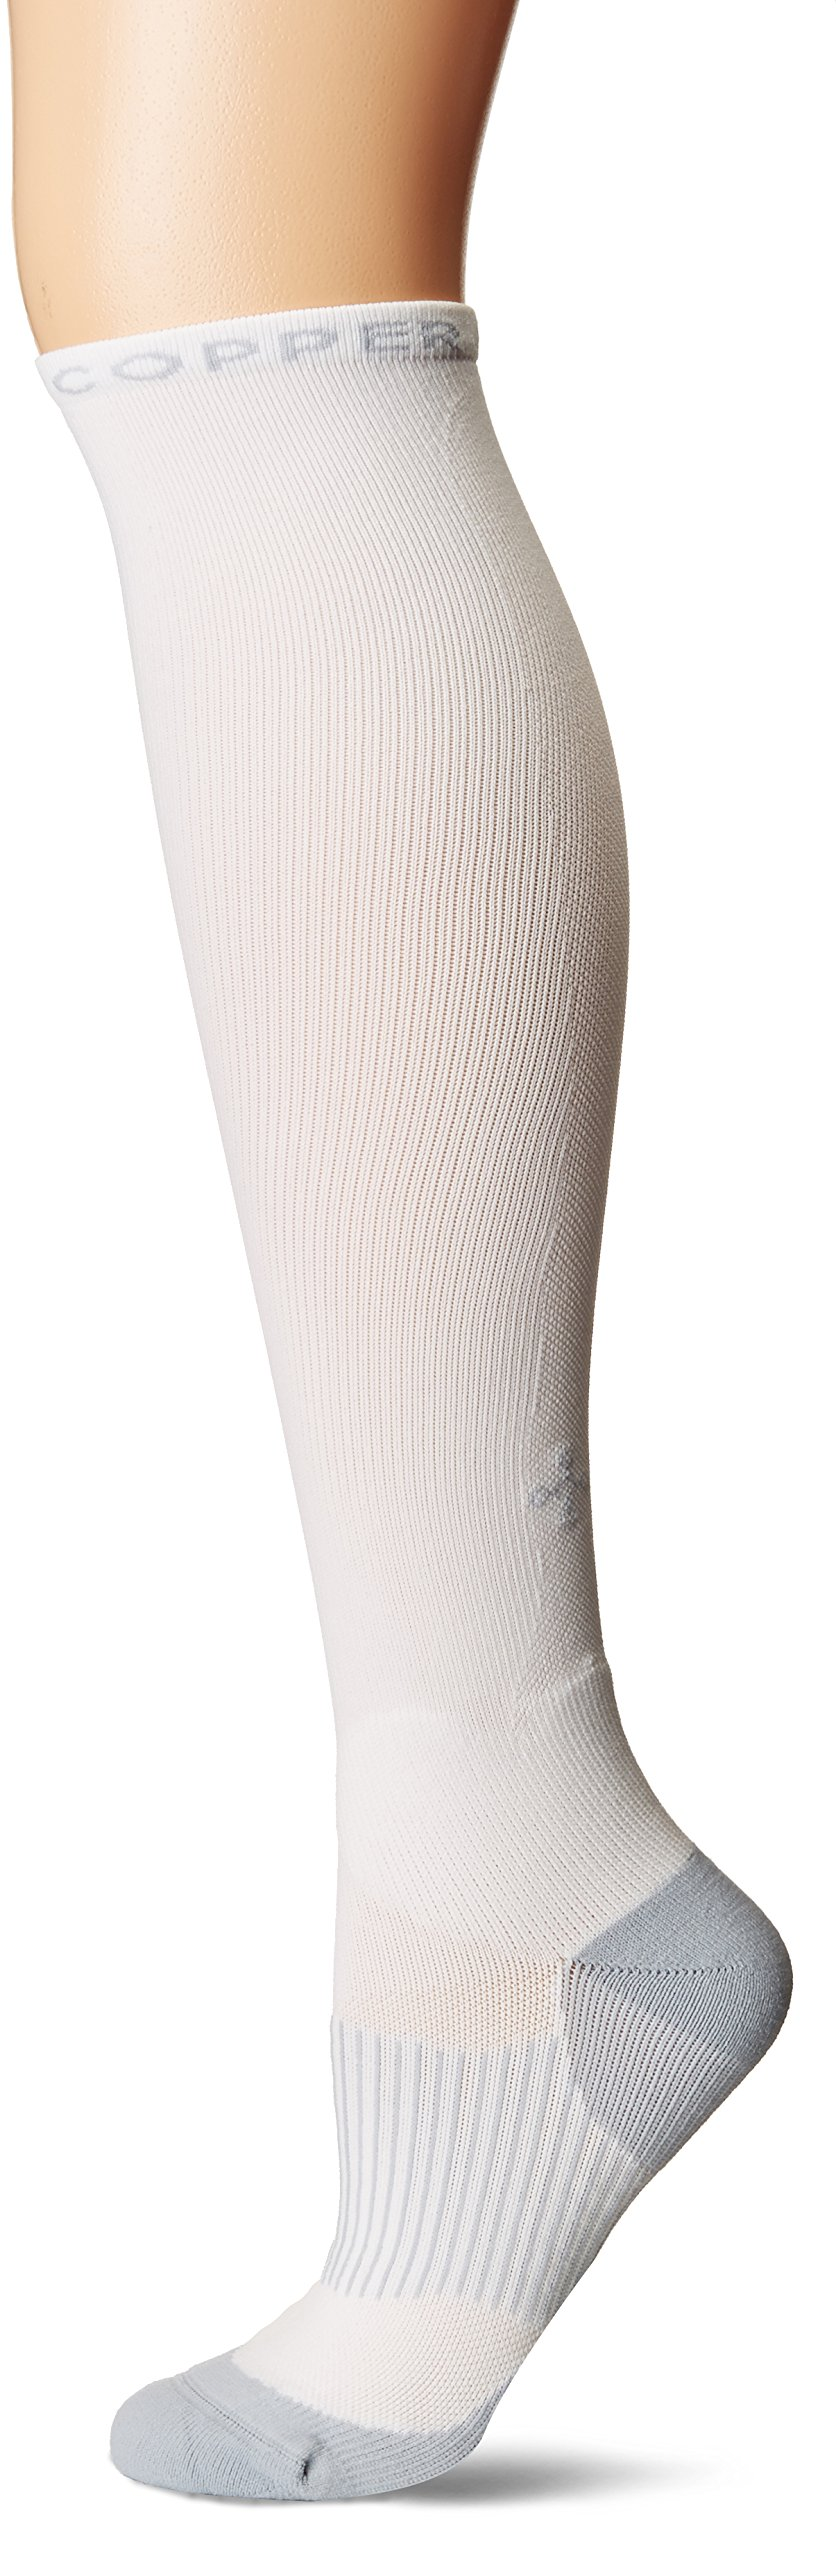 Tommie Copper Women's Performance Compression Over The Calf Socks, White w/Grey 10-12.5 by Tommie Copper